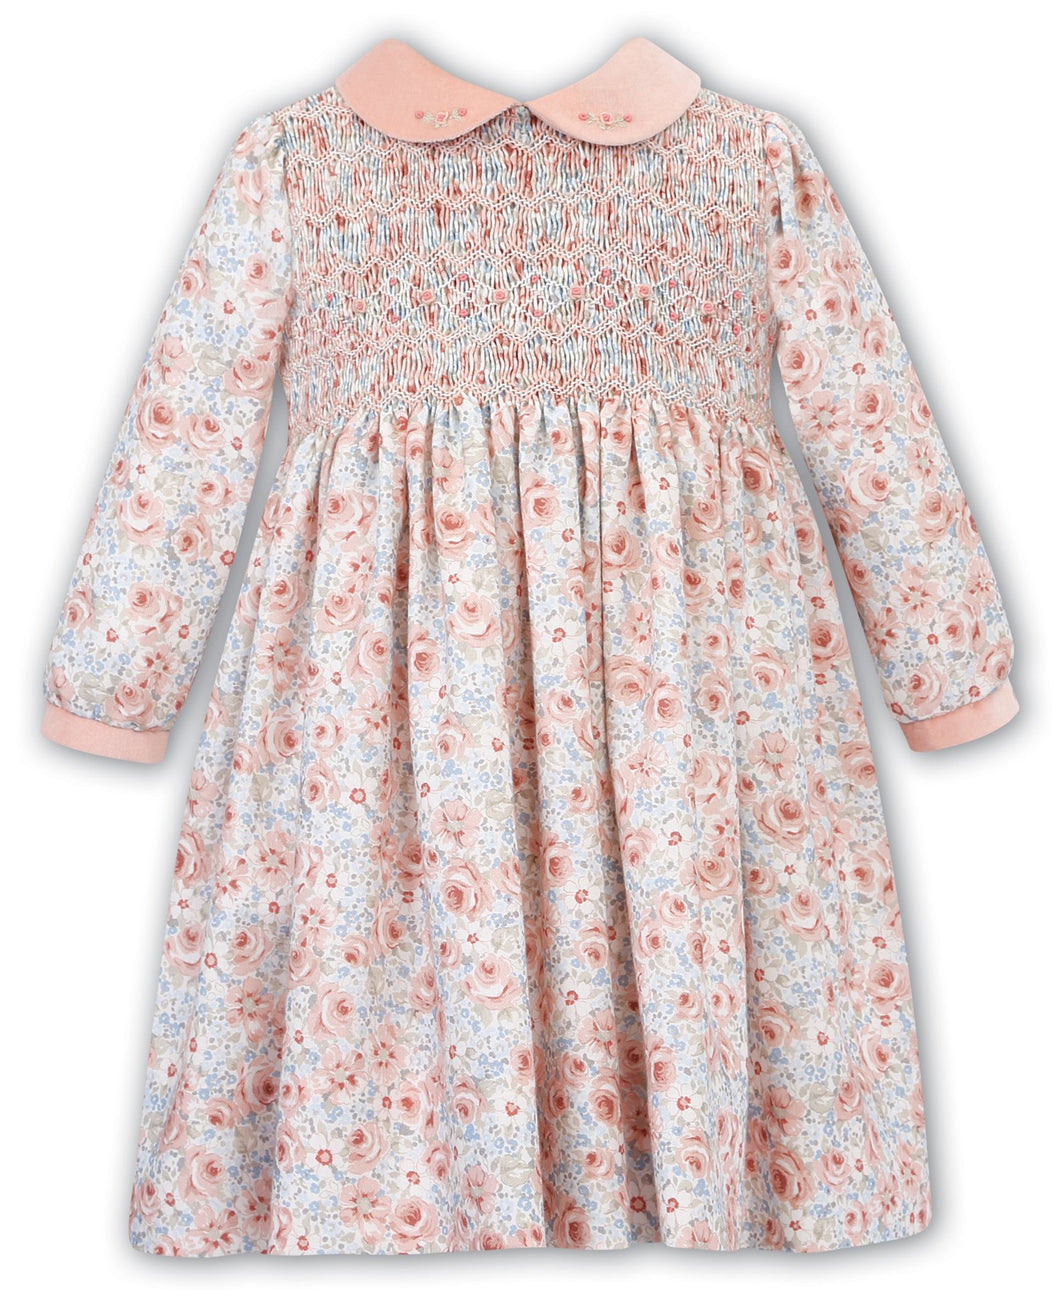 Girls Traditional Hand Smocked and Embroidered Floral Print Long Sleeved Dress with Contasting Peter Pan Collar